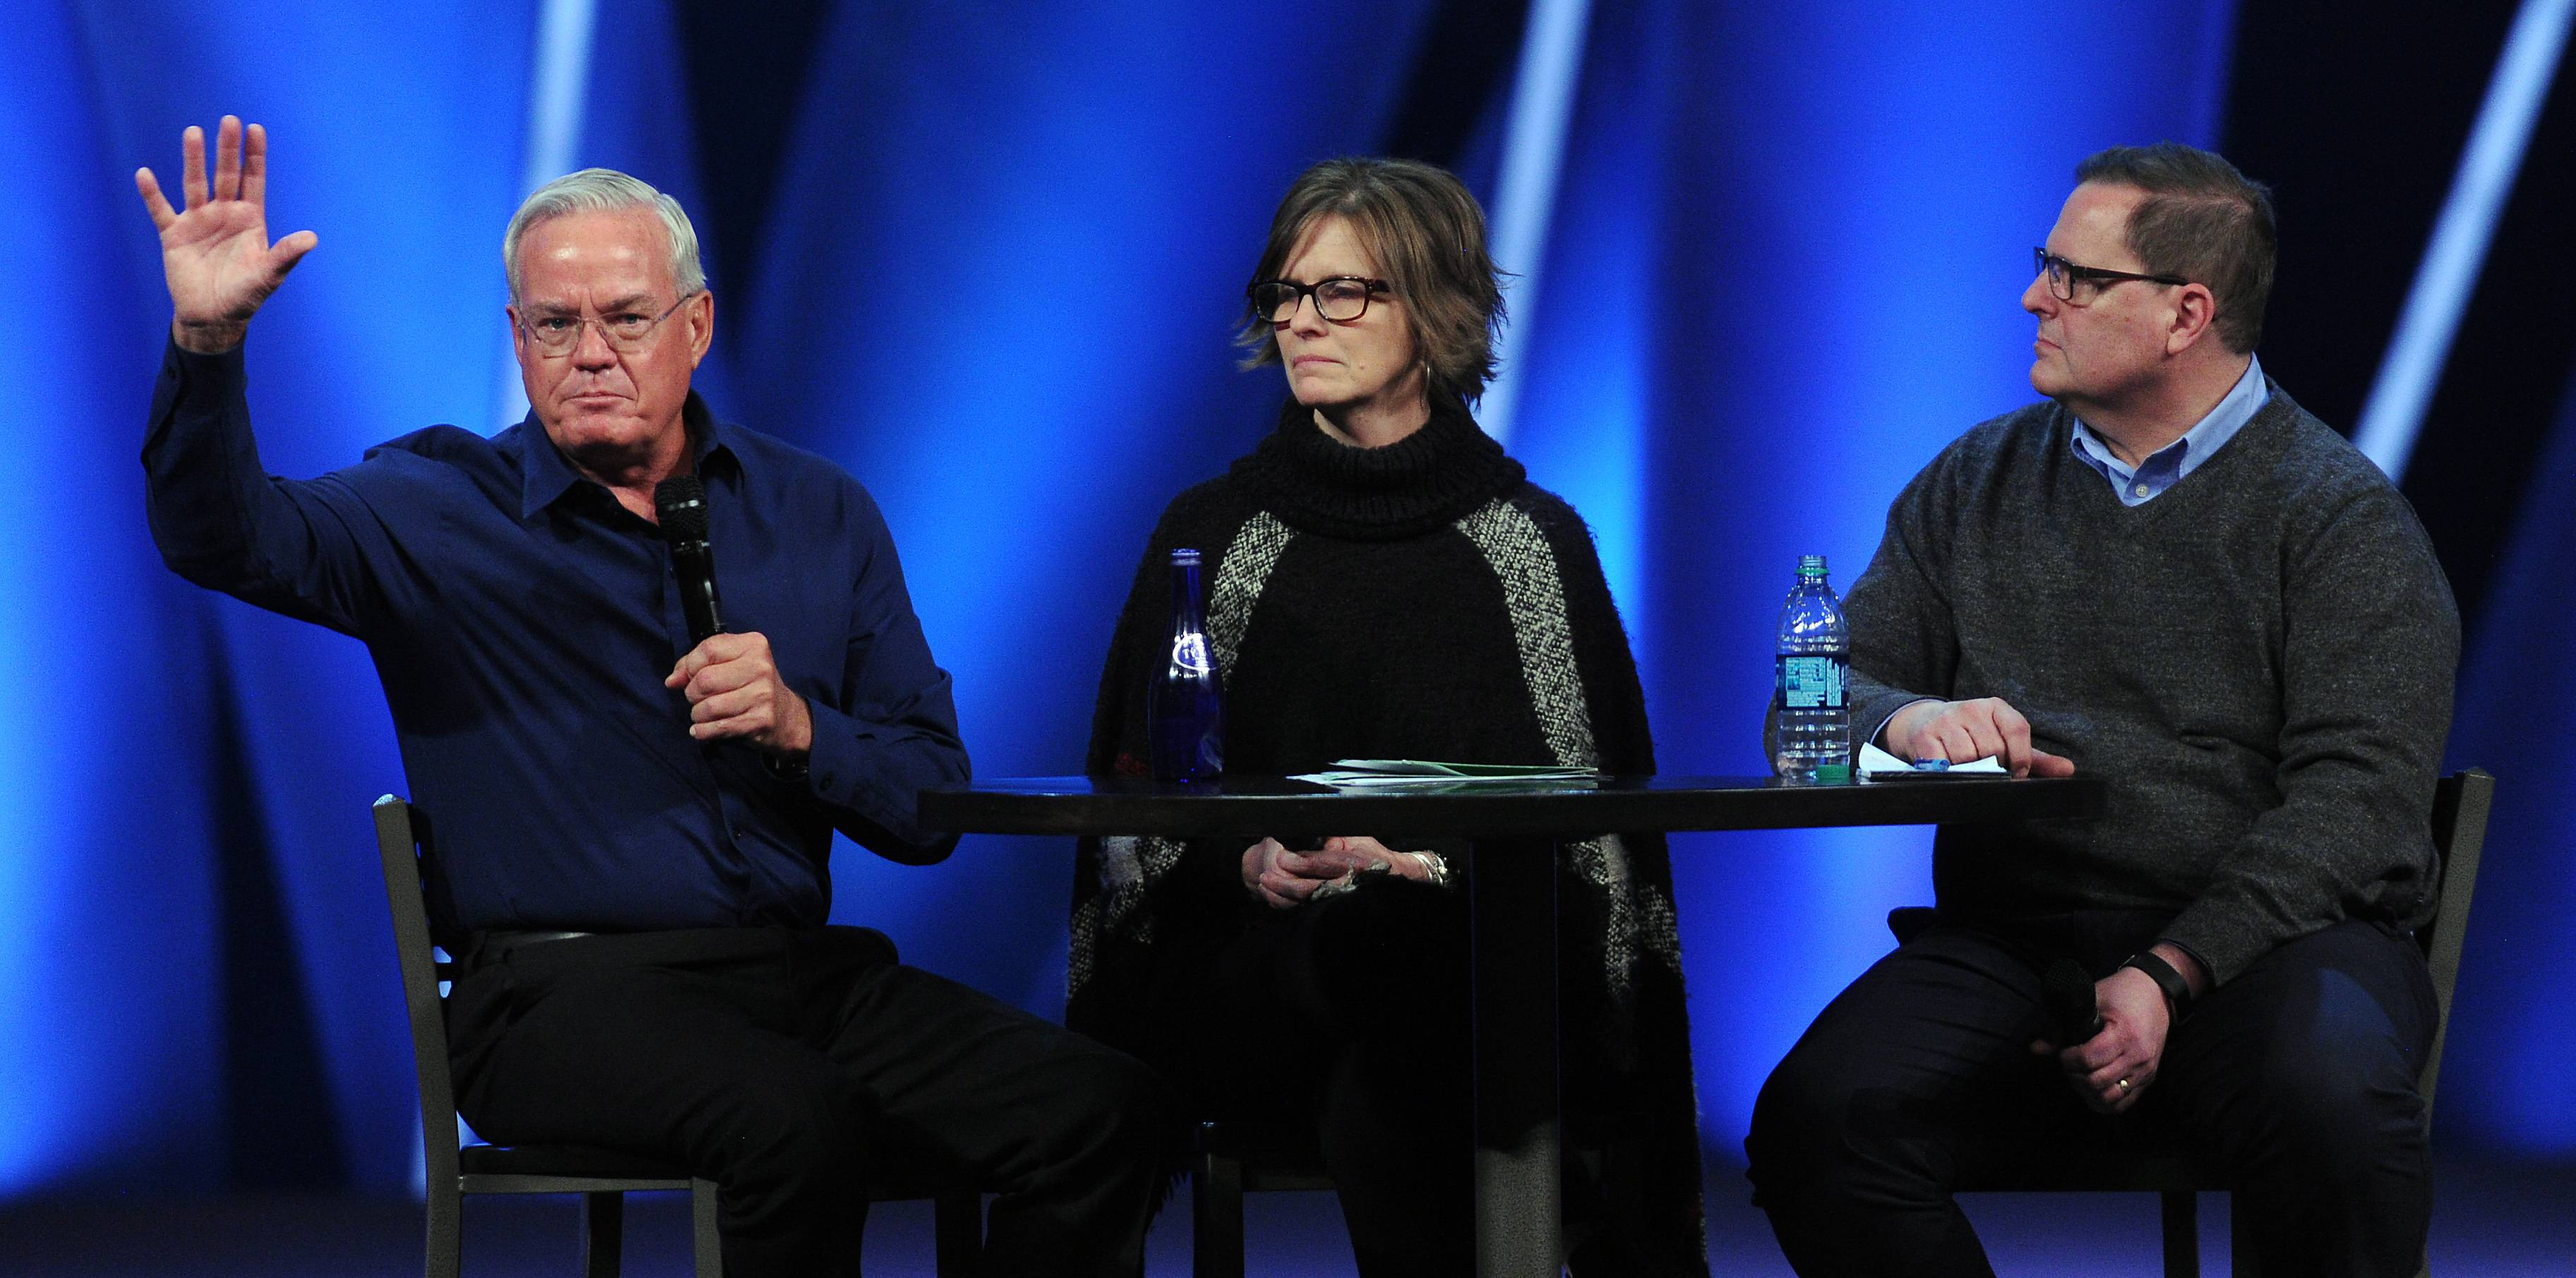 Willow Creek senior pastor Bill Hybels, left, says allegations of misconduct are part of a smear campaign.